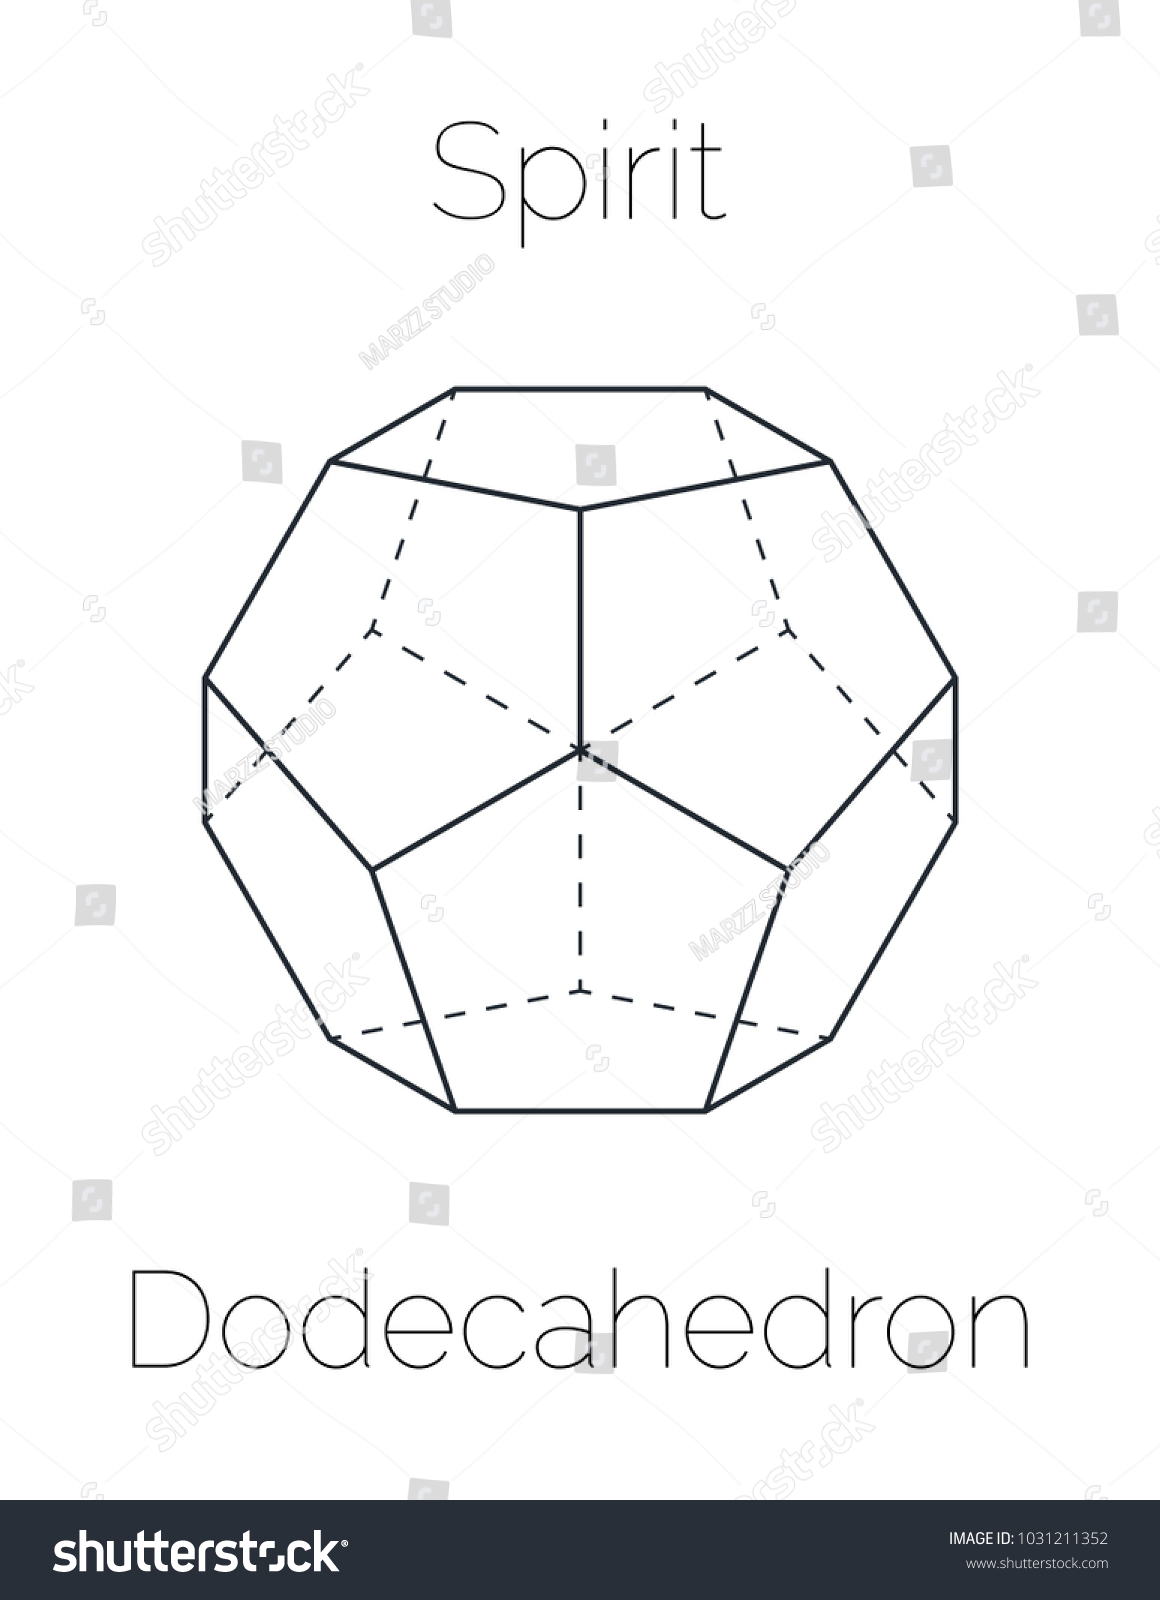 Dodecahedron Platonic Solid Stock Vector Royalty Free 1031211352